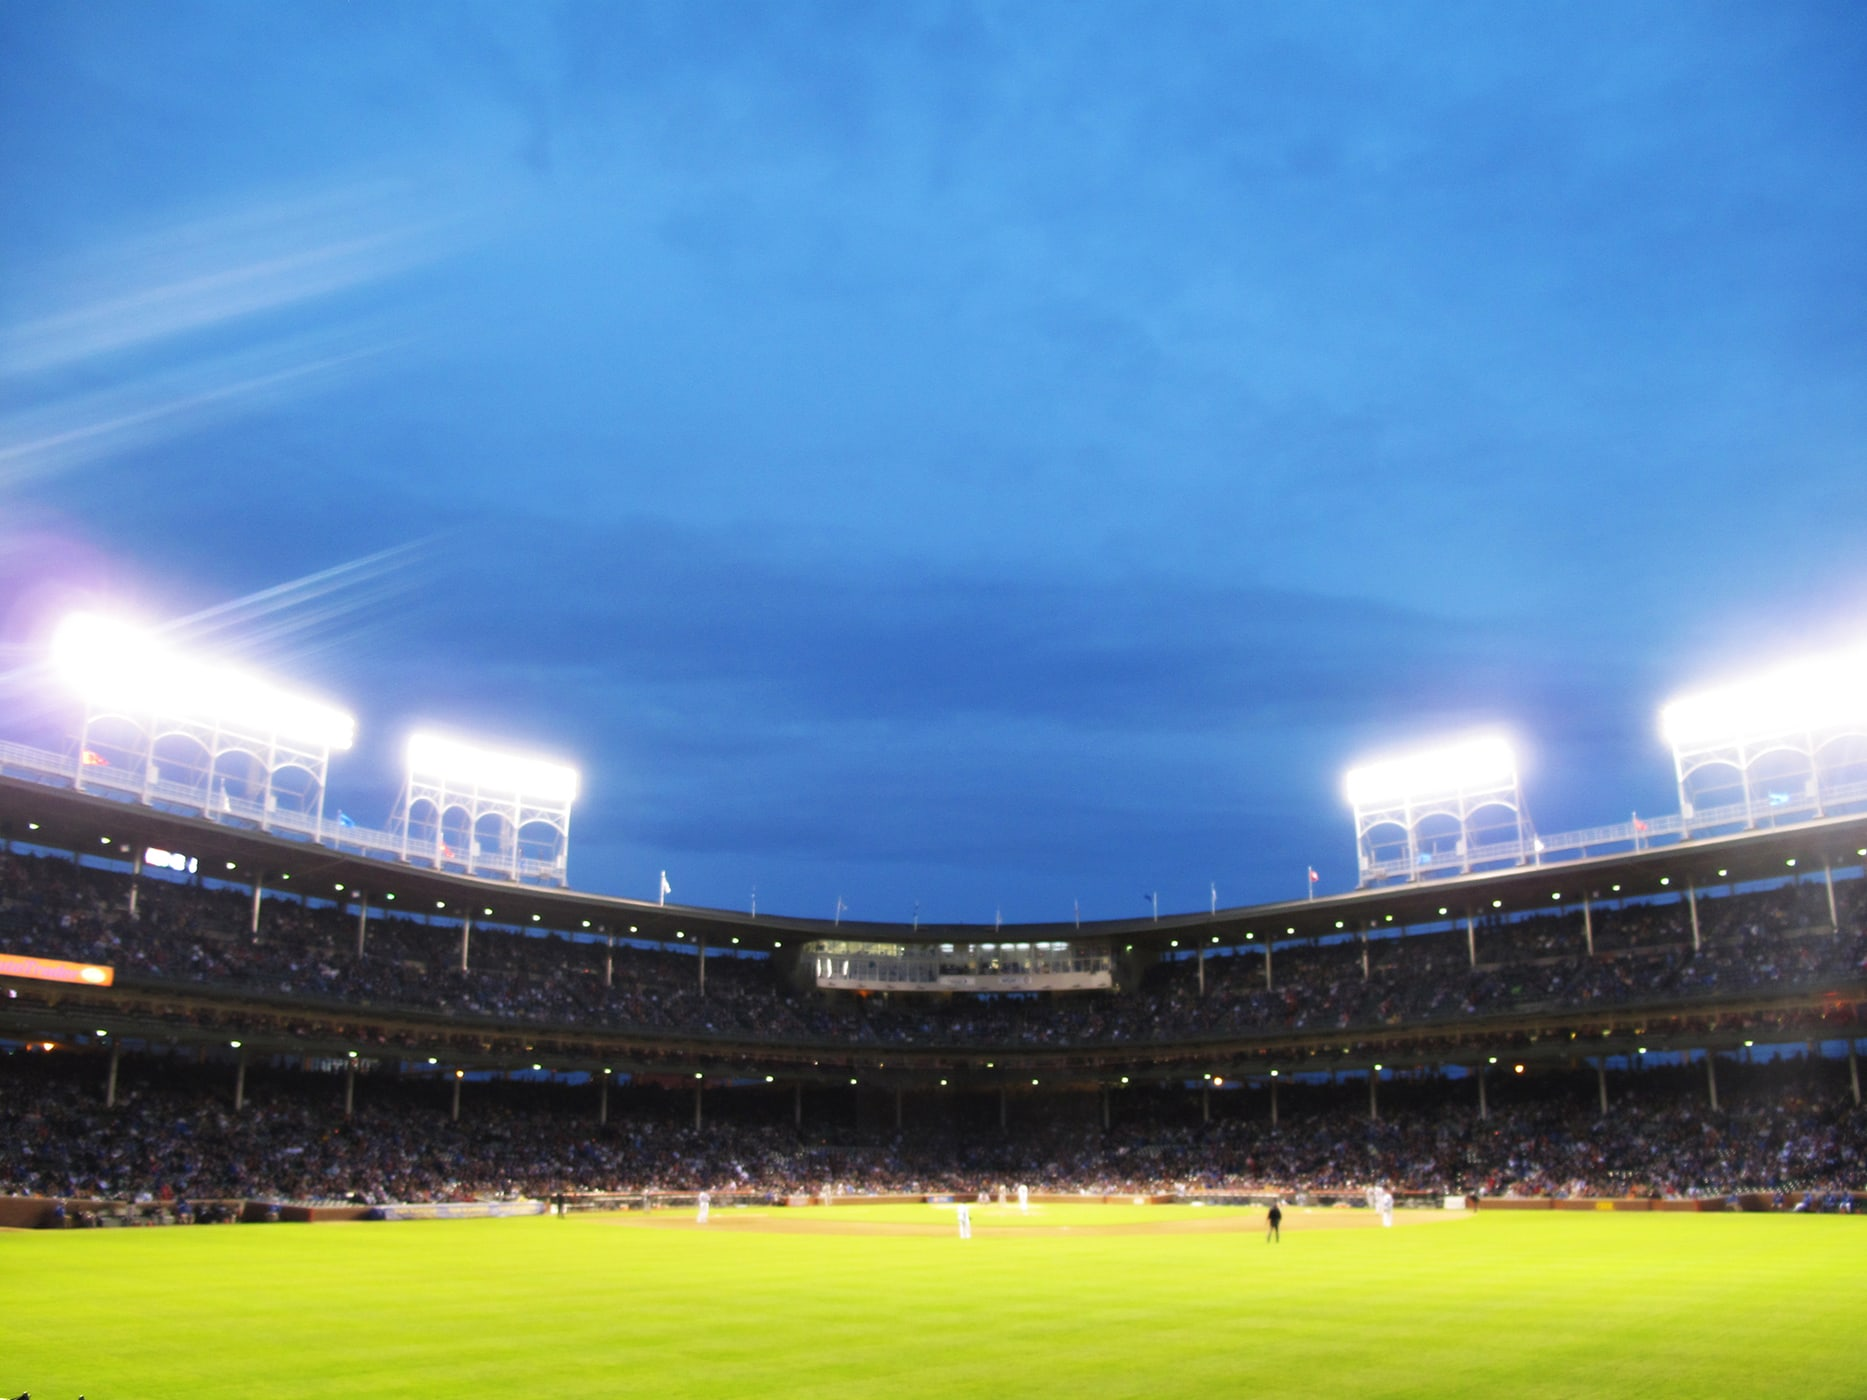 Cubs vs. Marlins at Wrigley Field